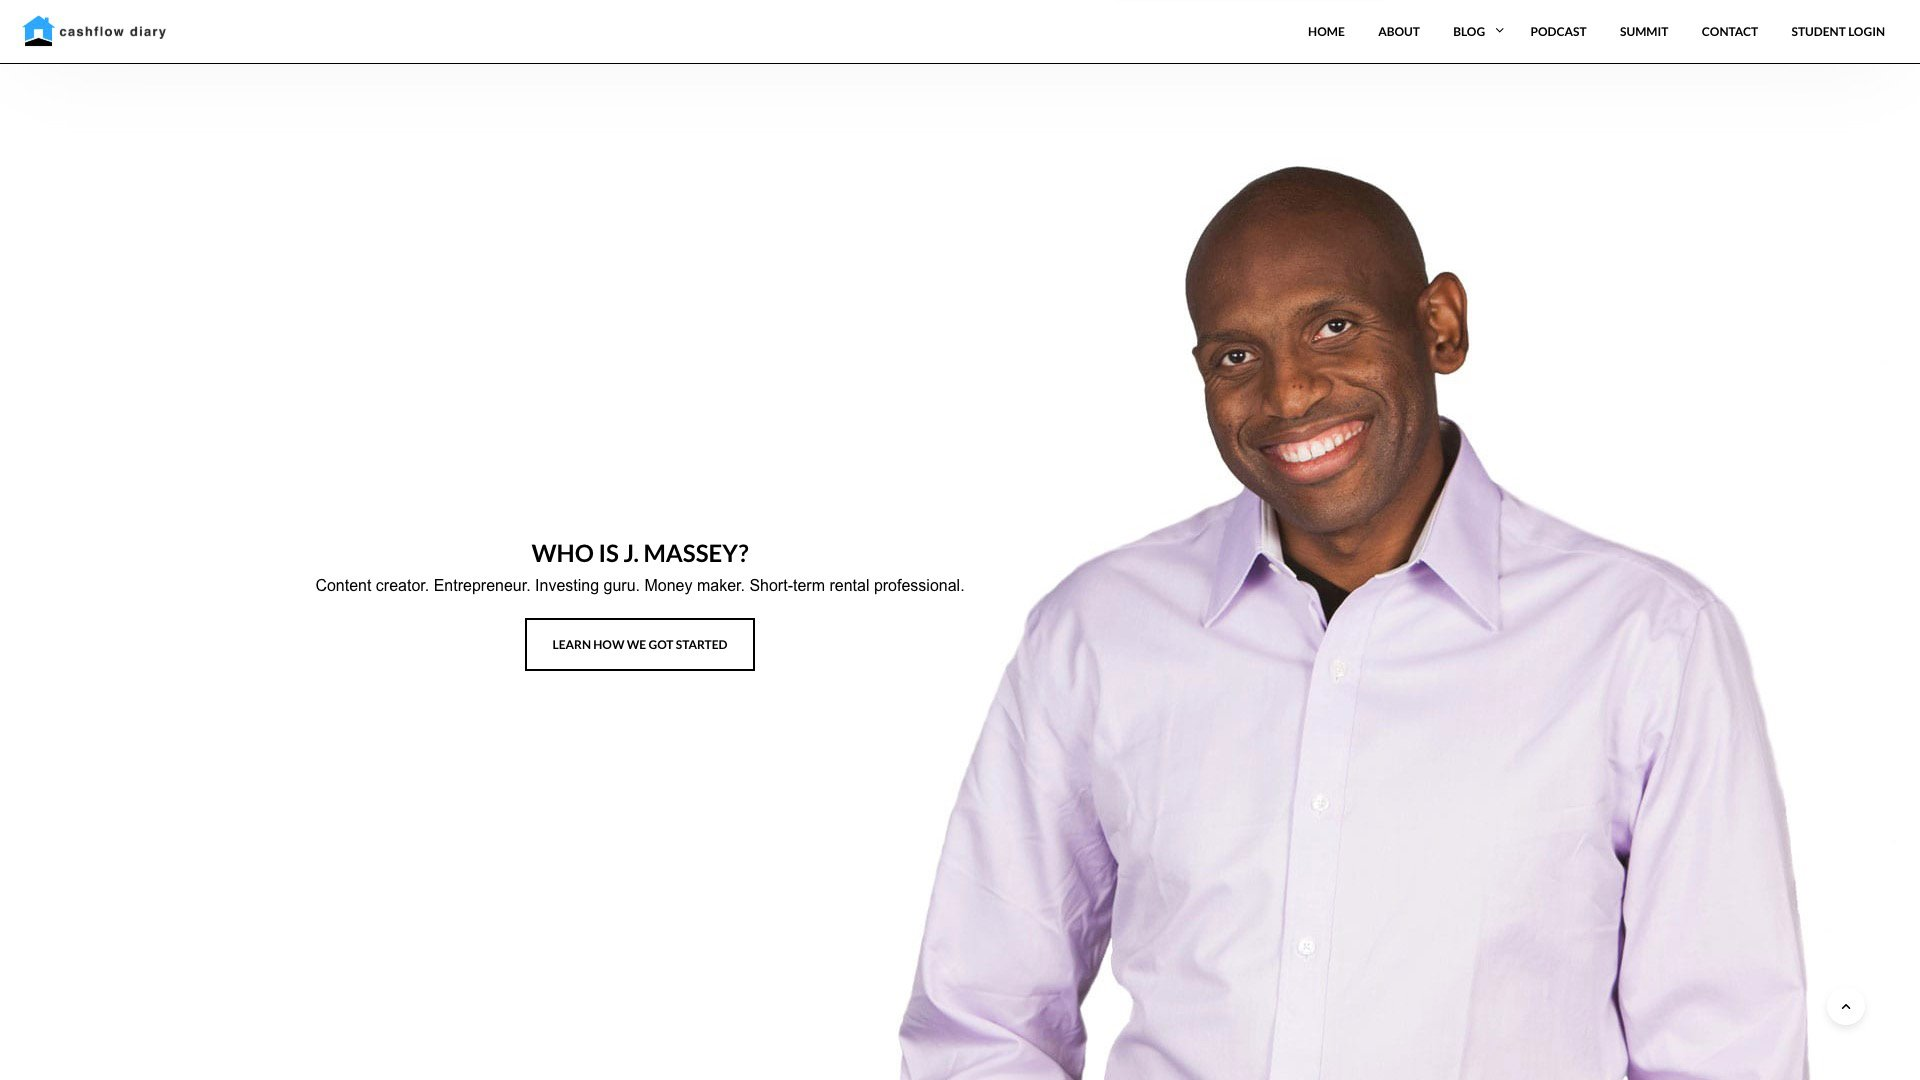 Cashflow Diary Website Featured Image